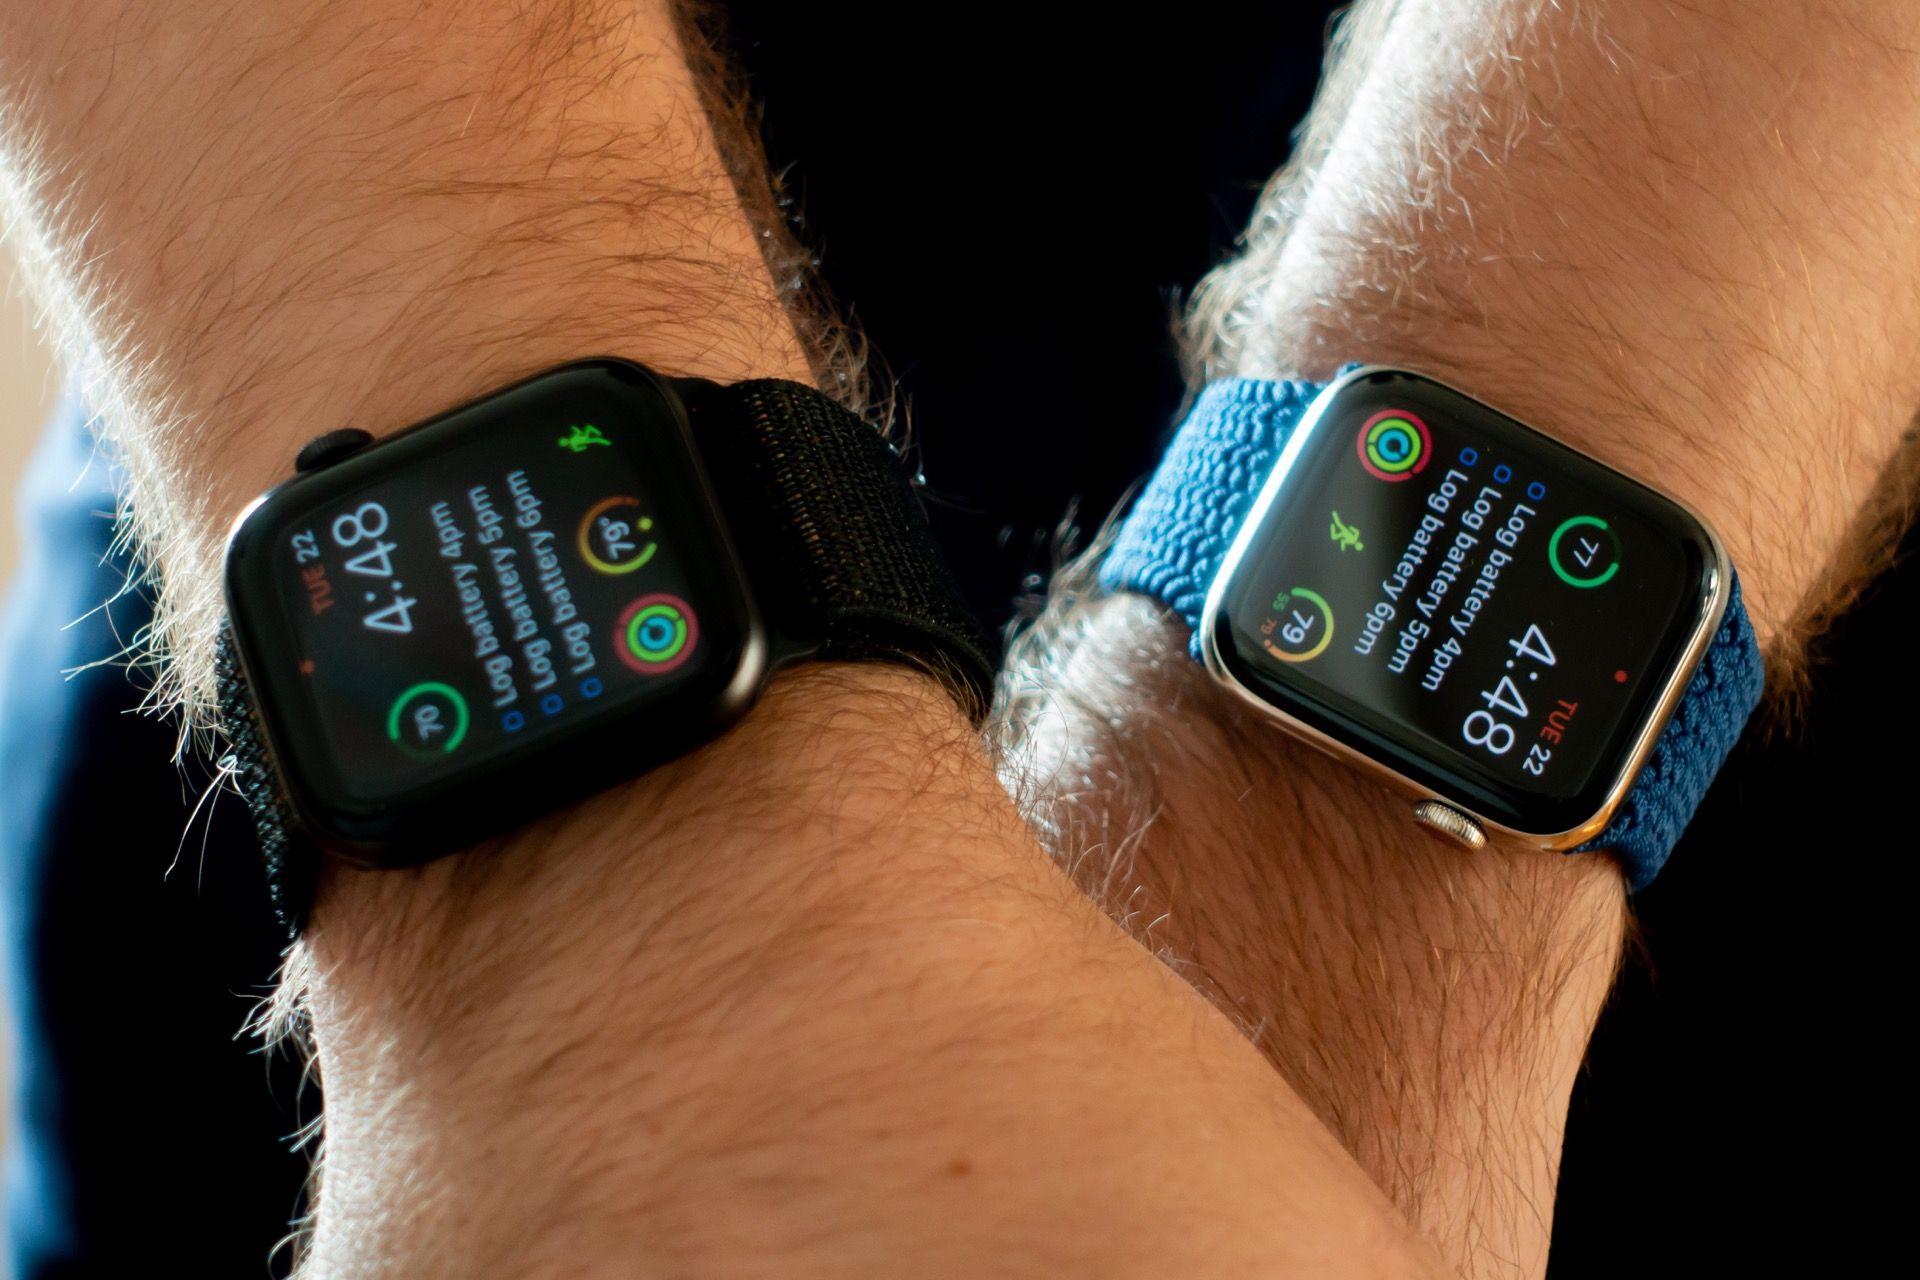 The New Apple Watch's Slightly Larger Battery